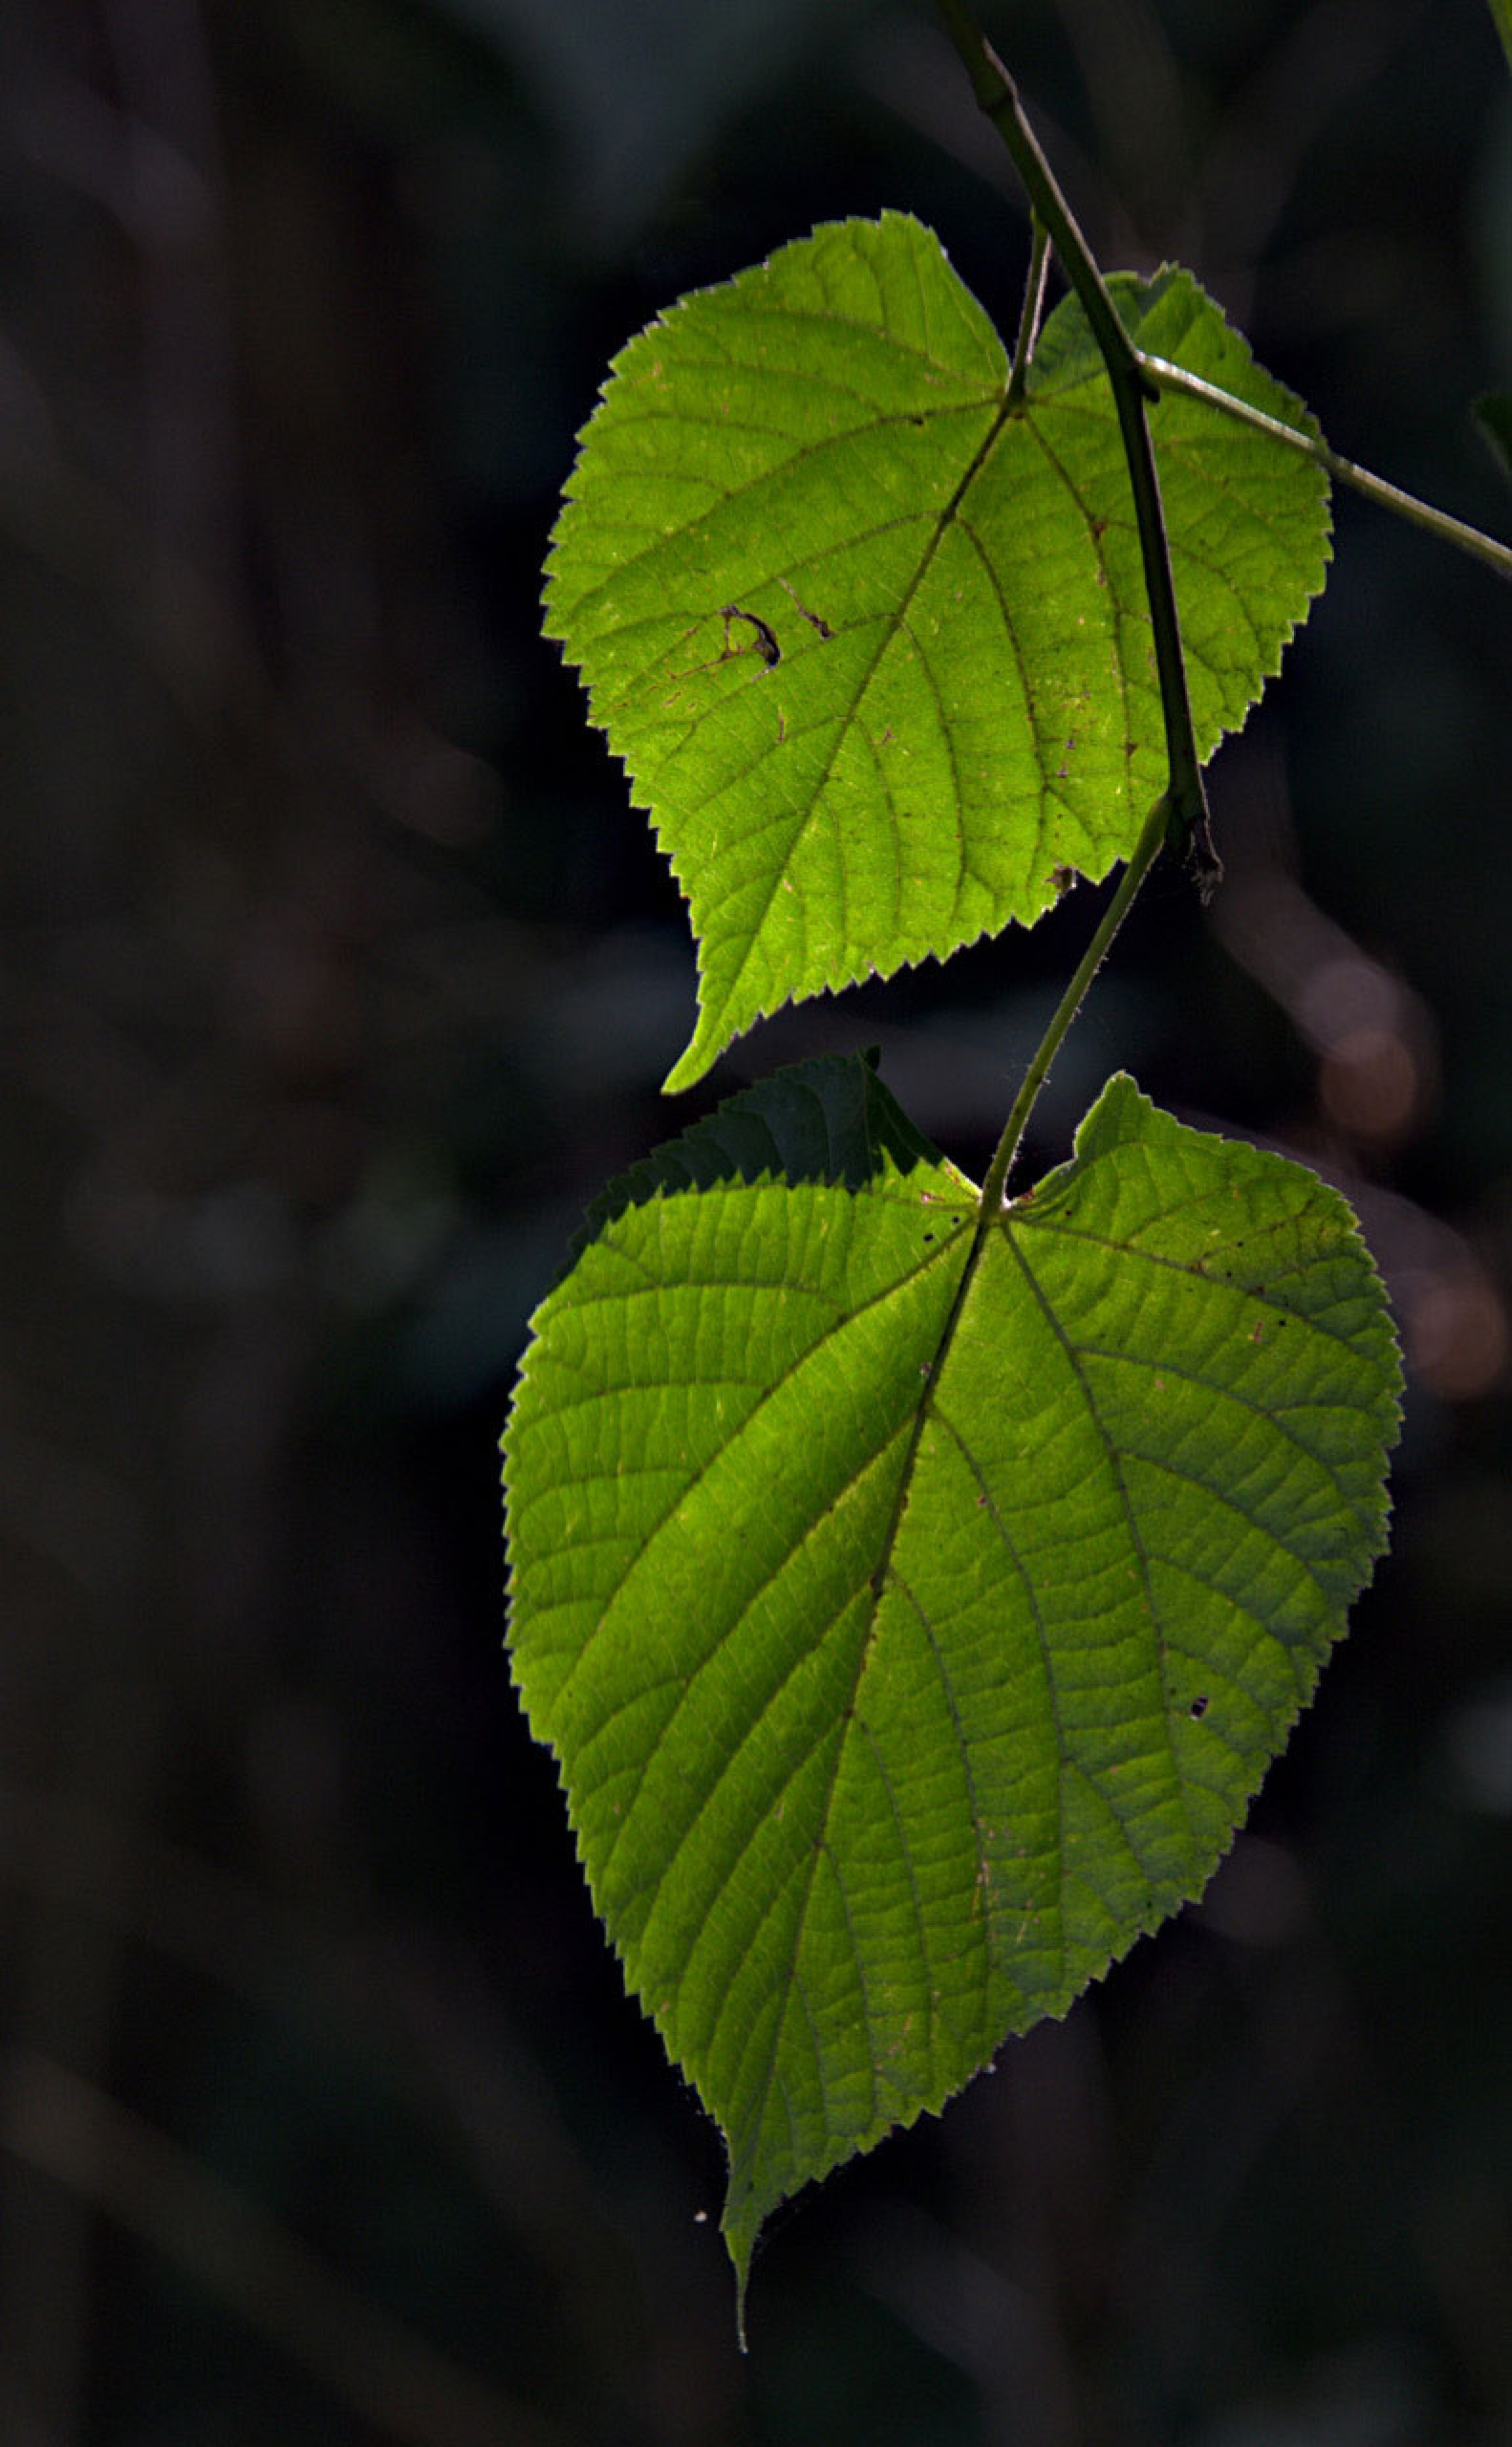 Two small green leaves are shown while the rest of the photograph is dark.